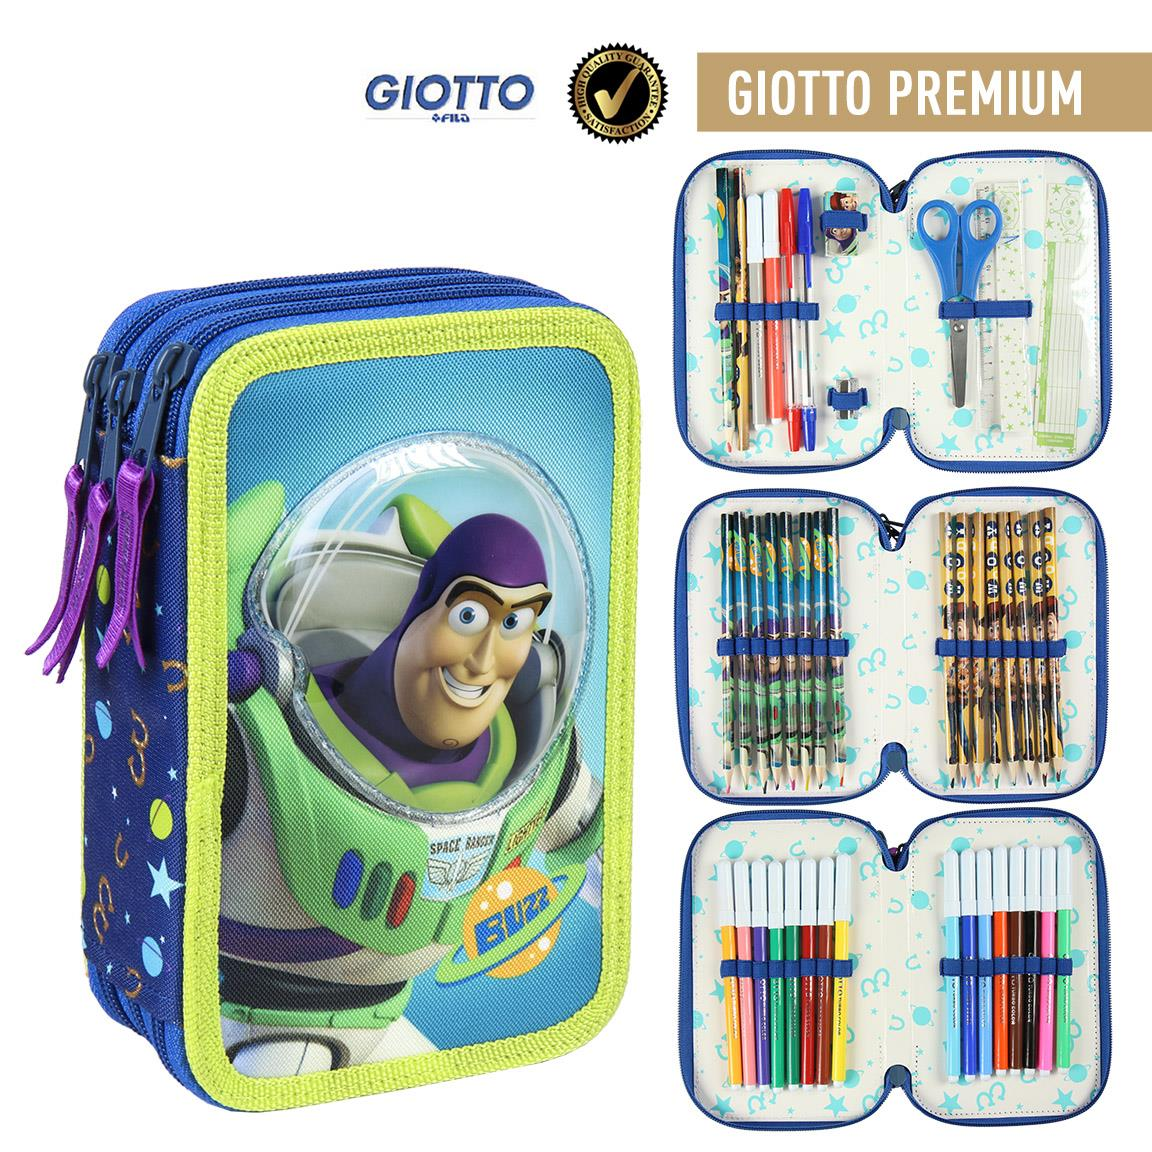 Plumier Threefold Giotto Premium OFFICIALLY LICENSED ORIGINAL Material Approved EU